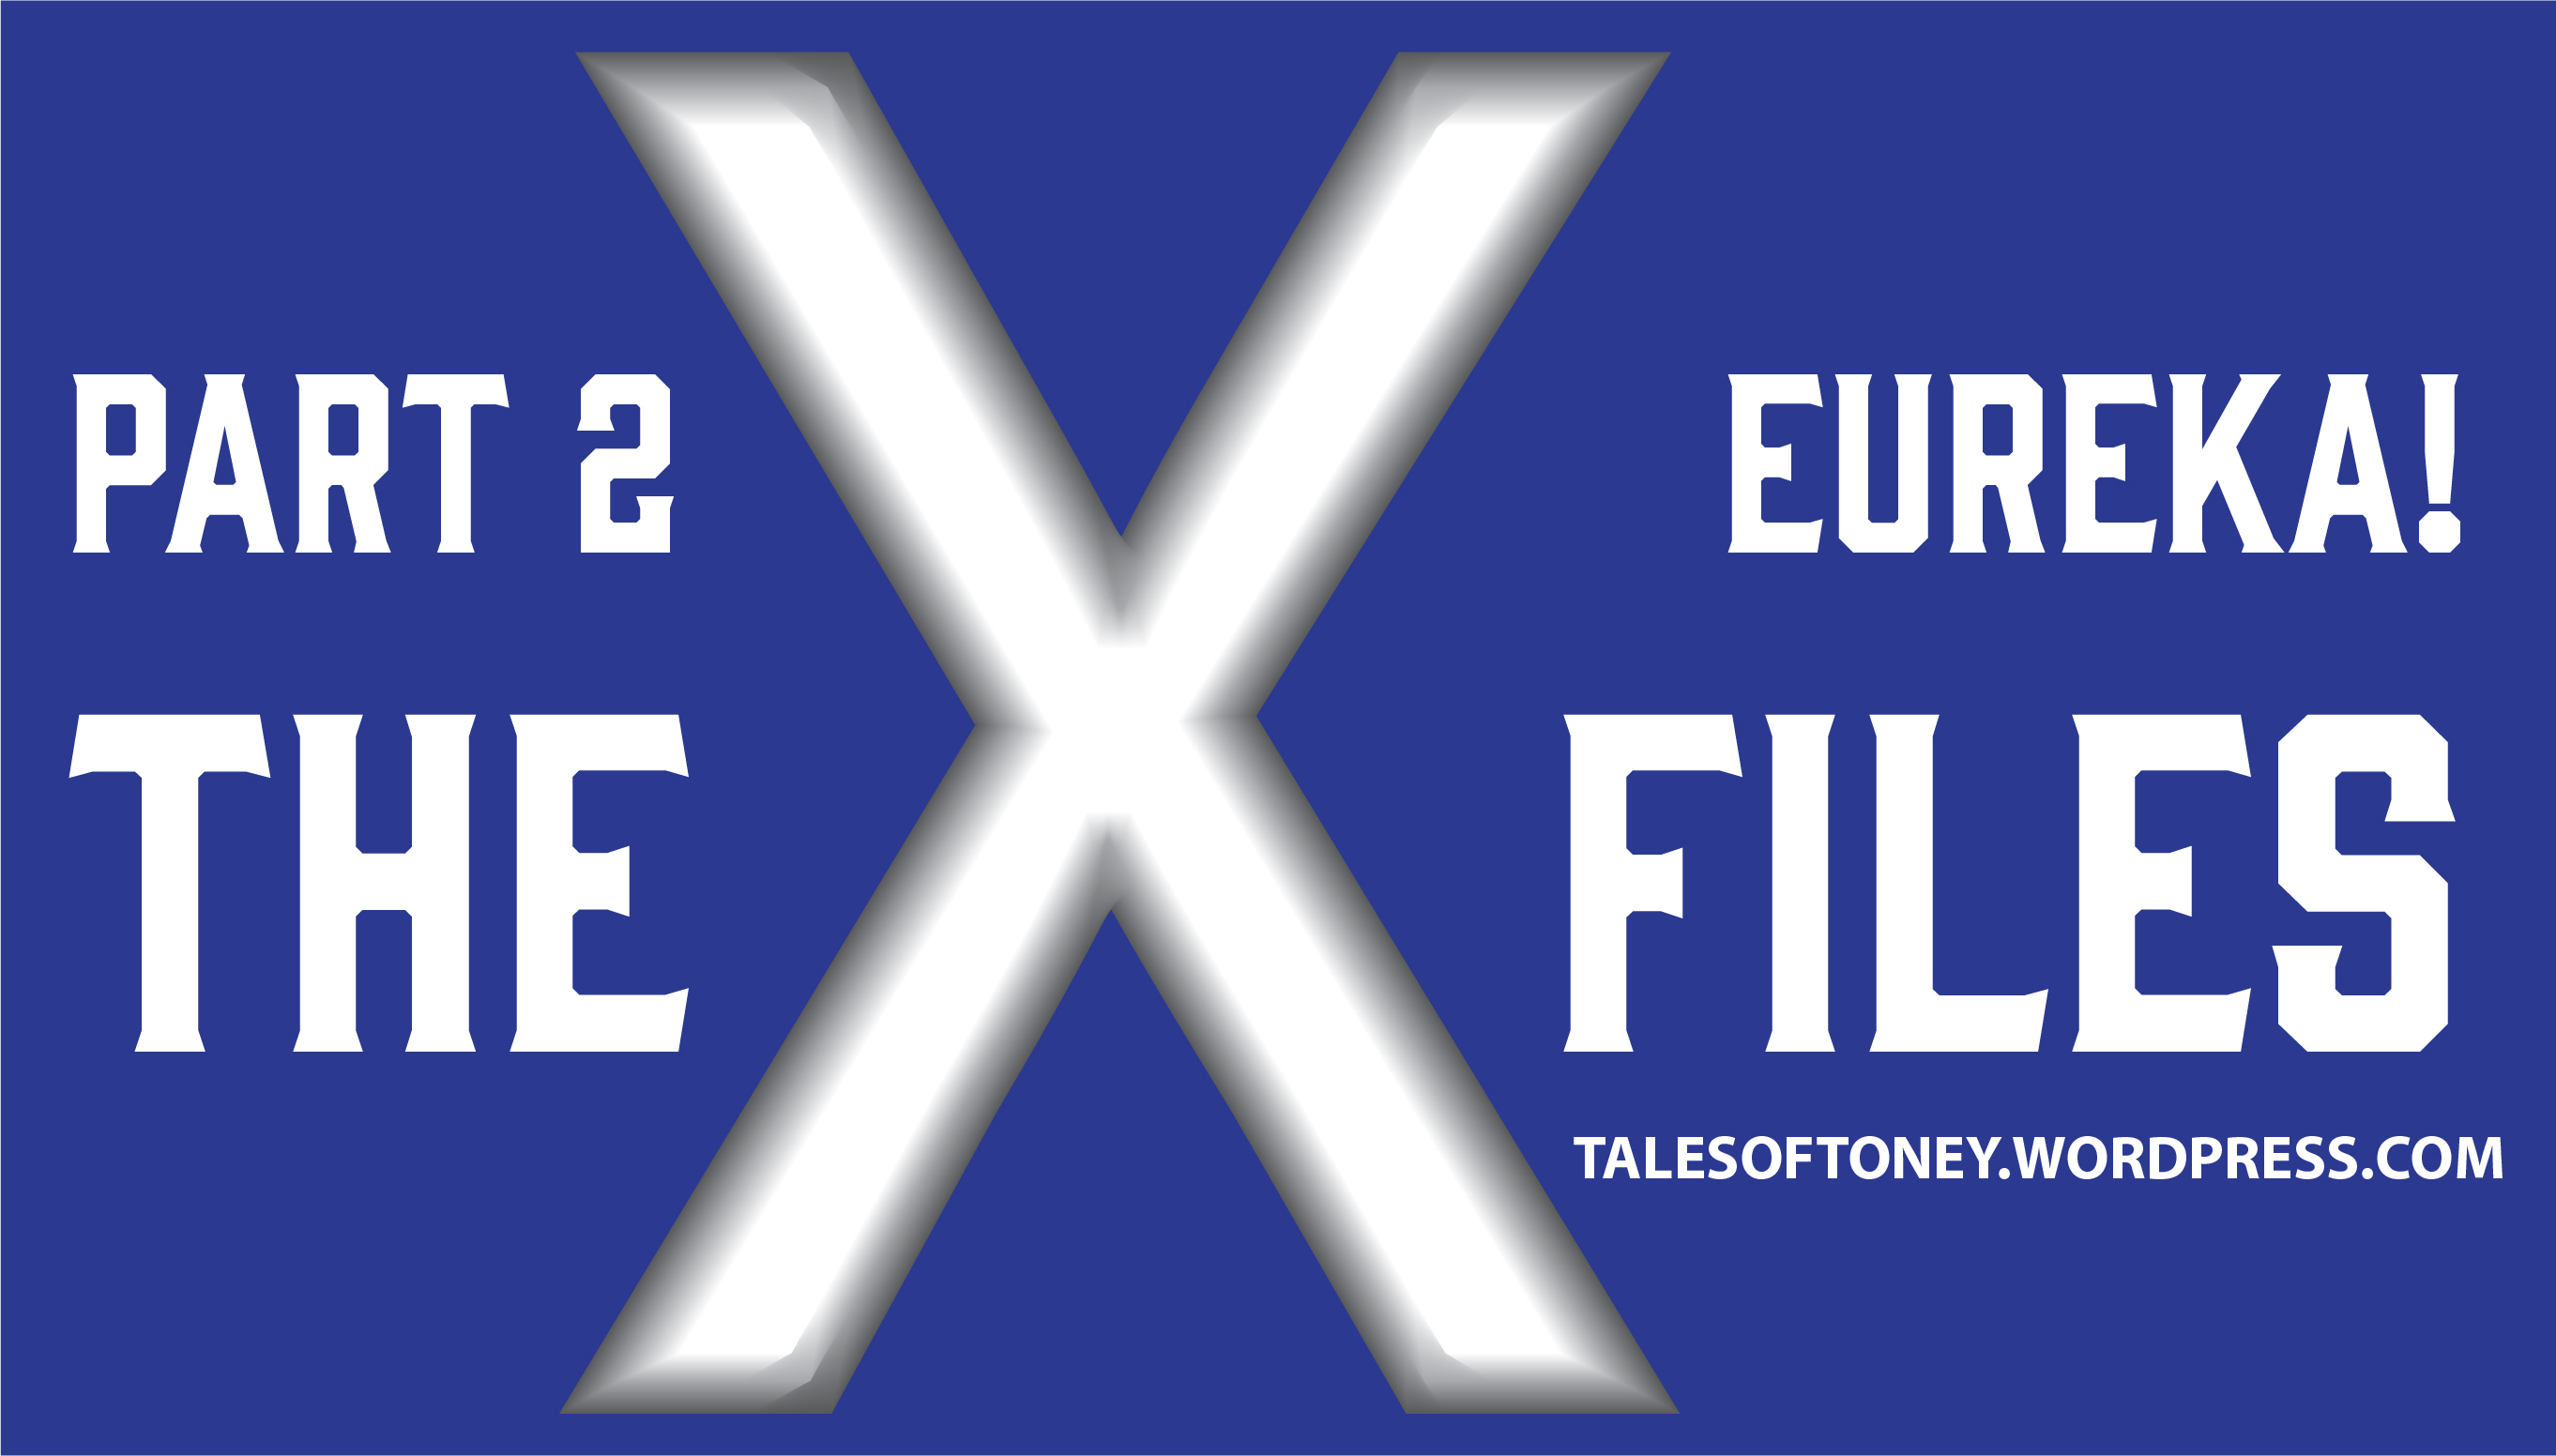 X-FILES_EUREKA HEADER_PT2